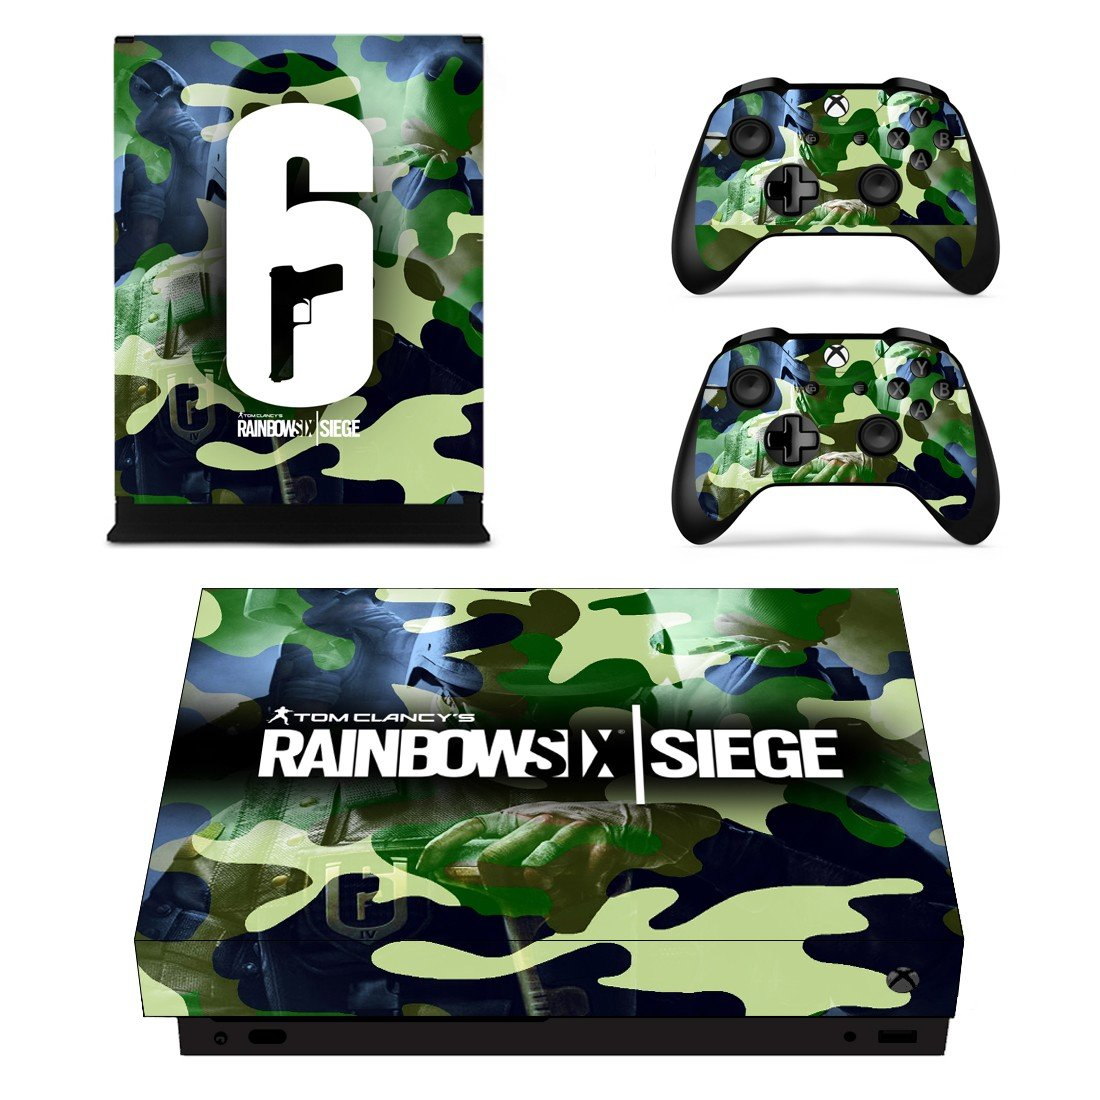 Rainbow Six Siege decal skin sticker for Xbox One X console and controllers